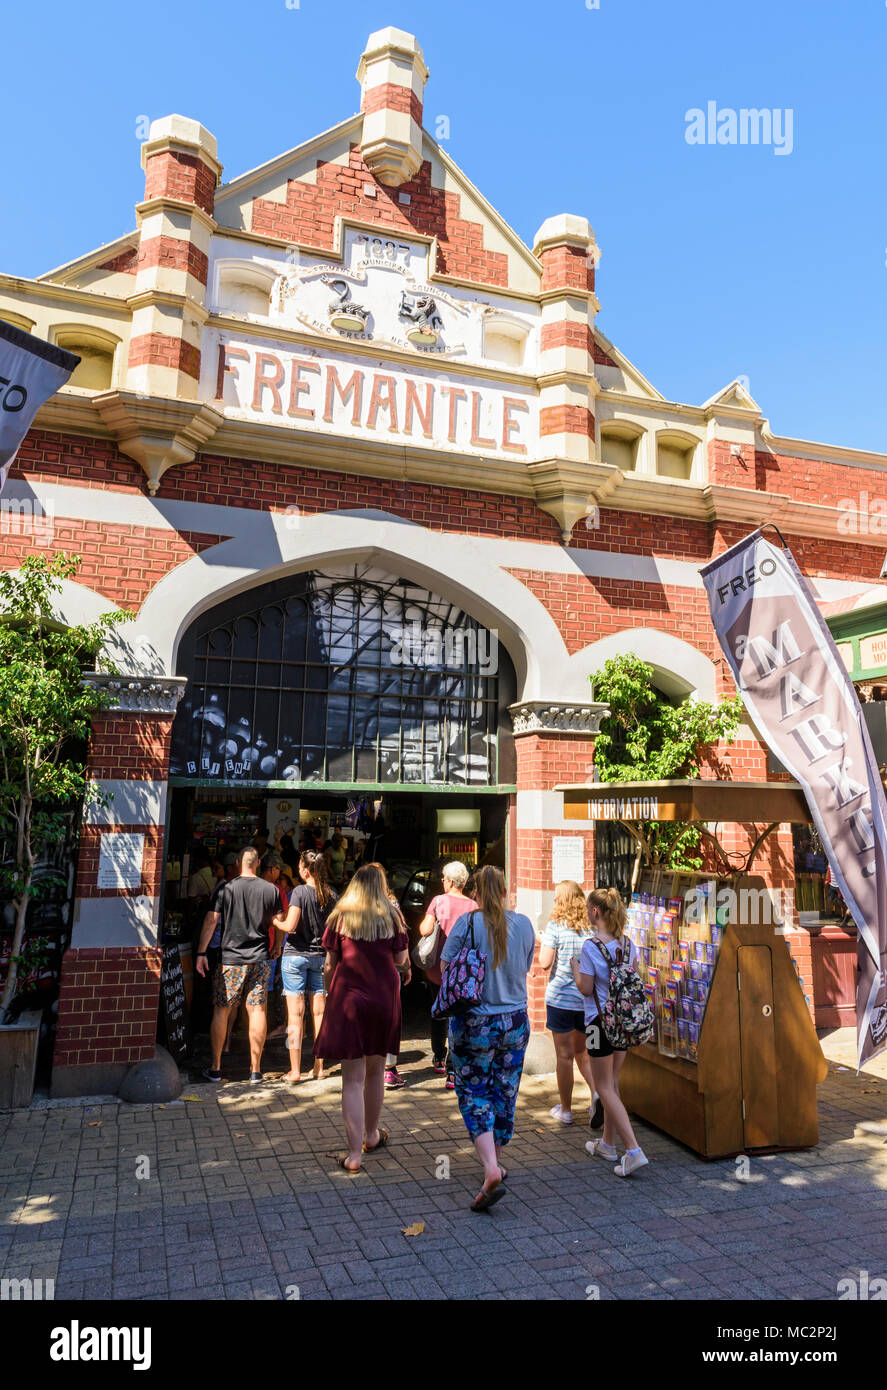 The iconic Fremantle Markets building, Fremantle, Western Australia, Australia - Stock Image